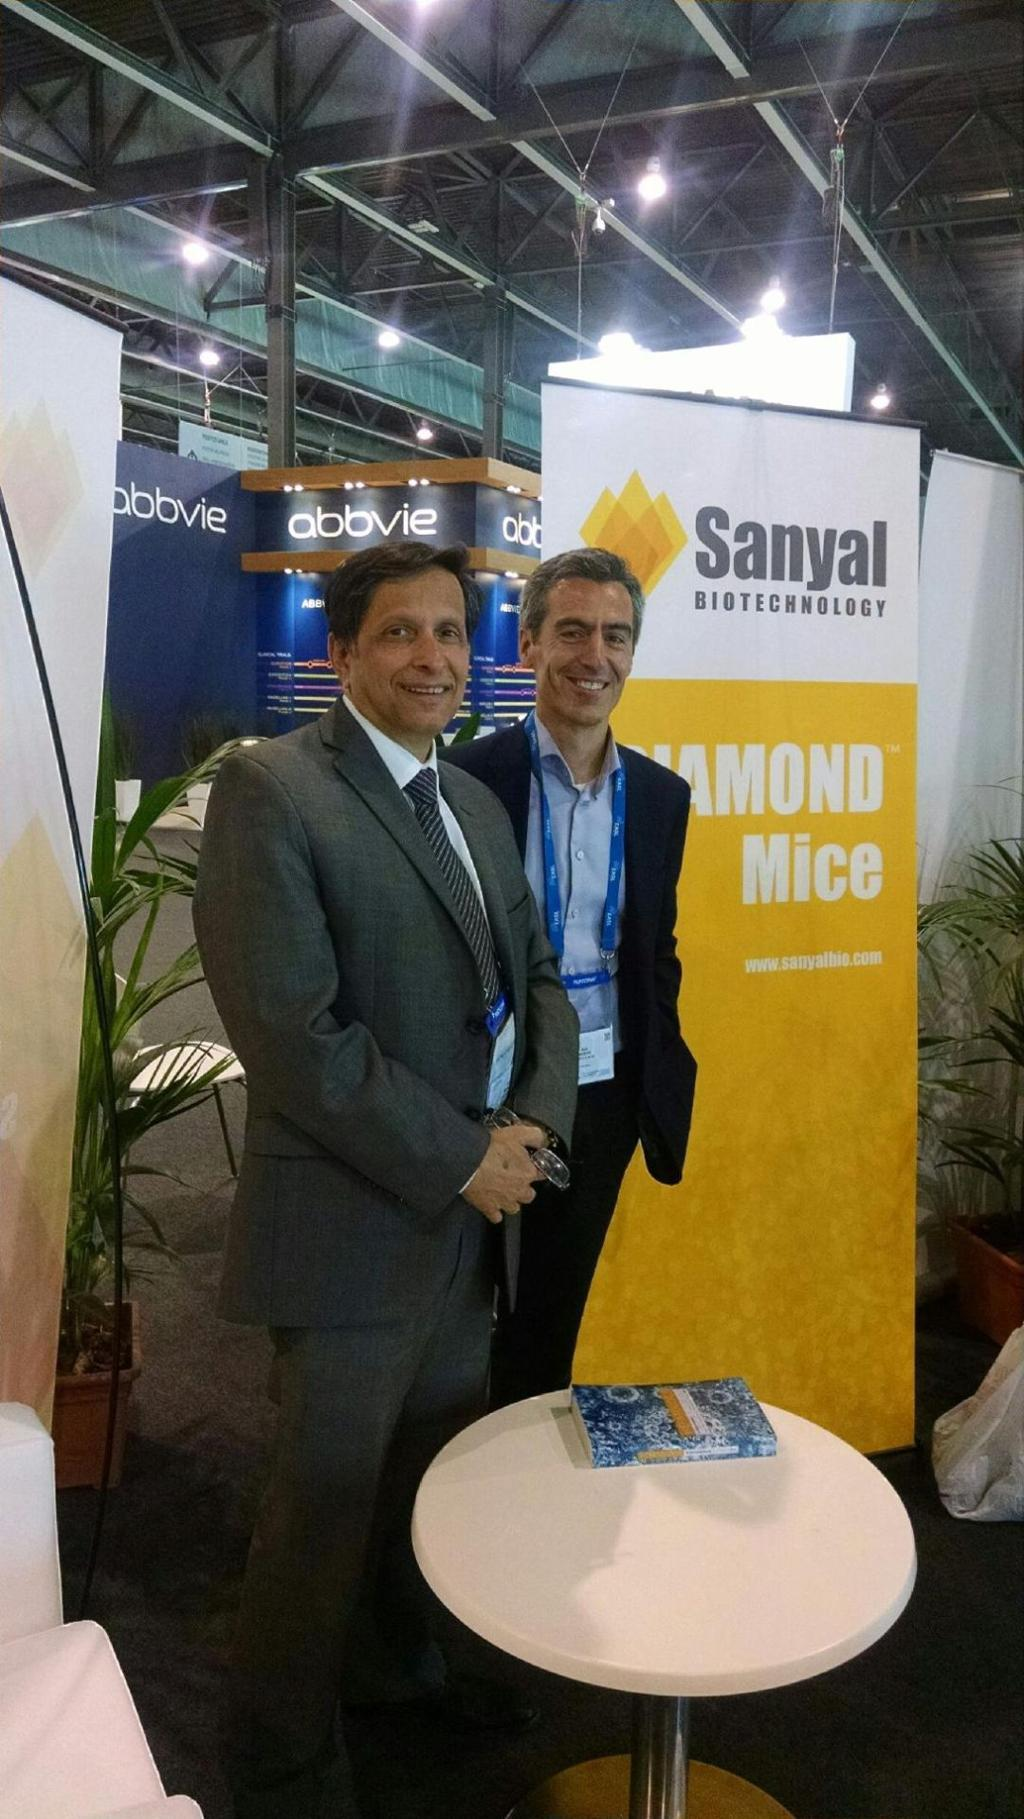 Sanyal Biotechnology's mice could be game changer in world of liver